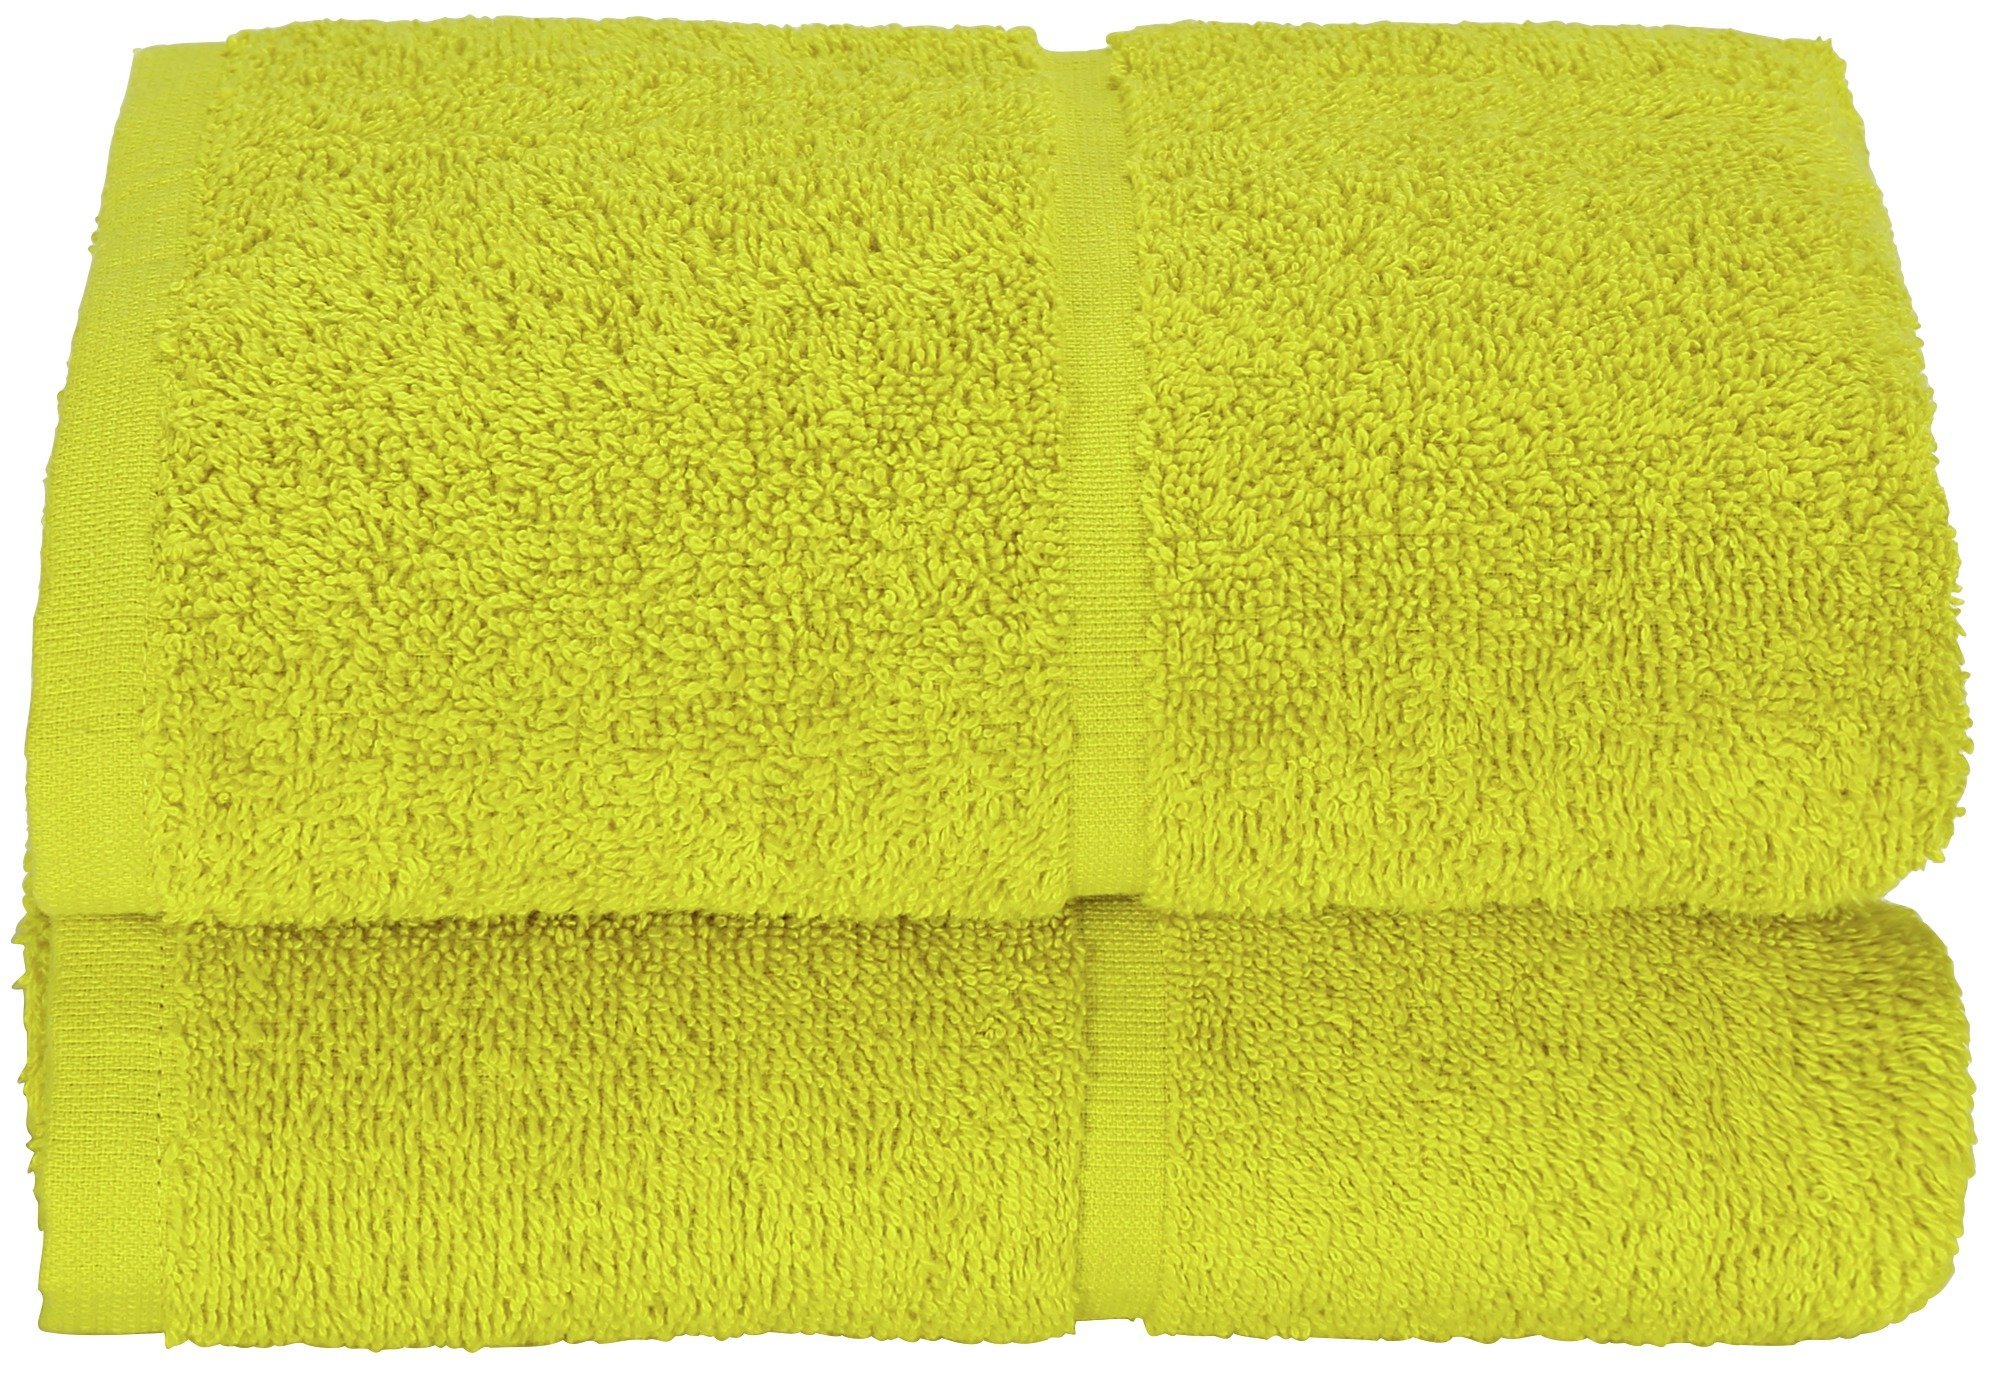 ColourMatch by Argos Pair of Hand Towels review